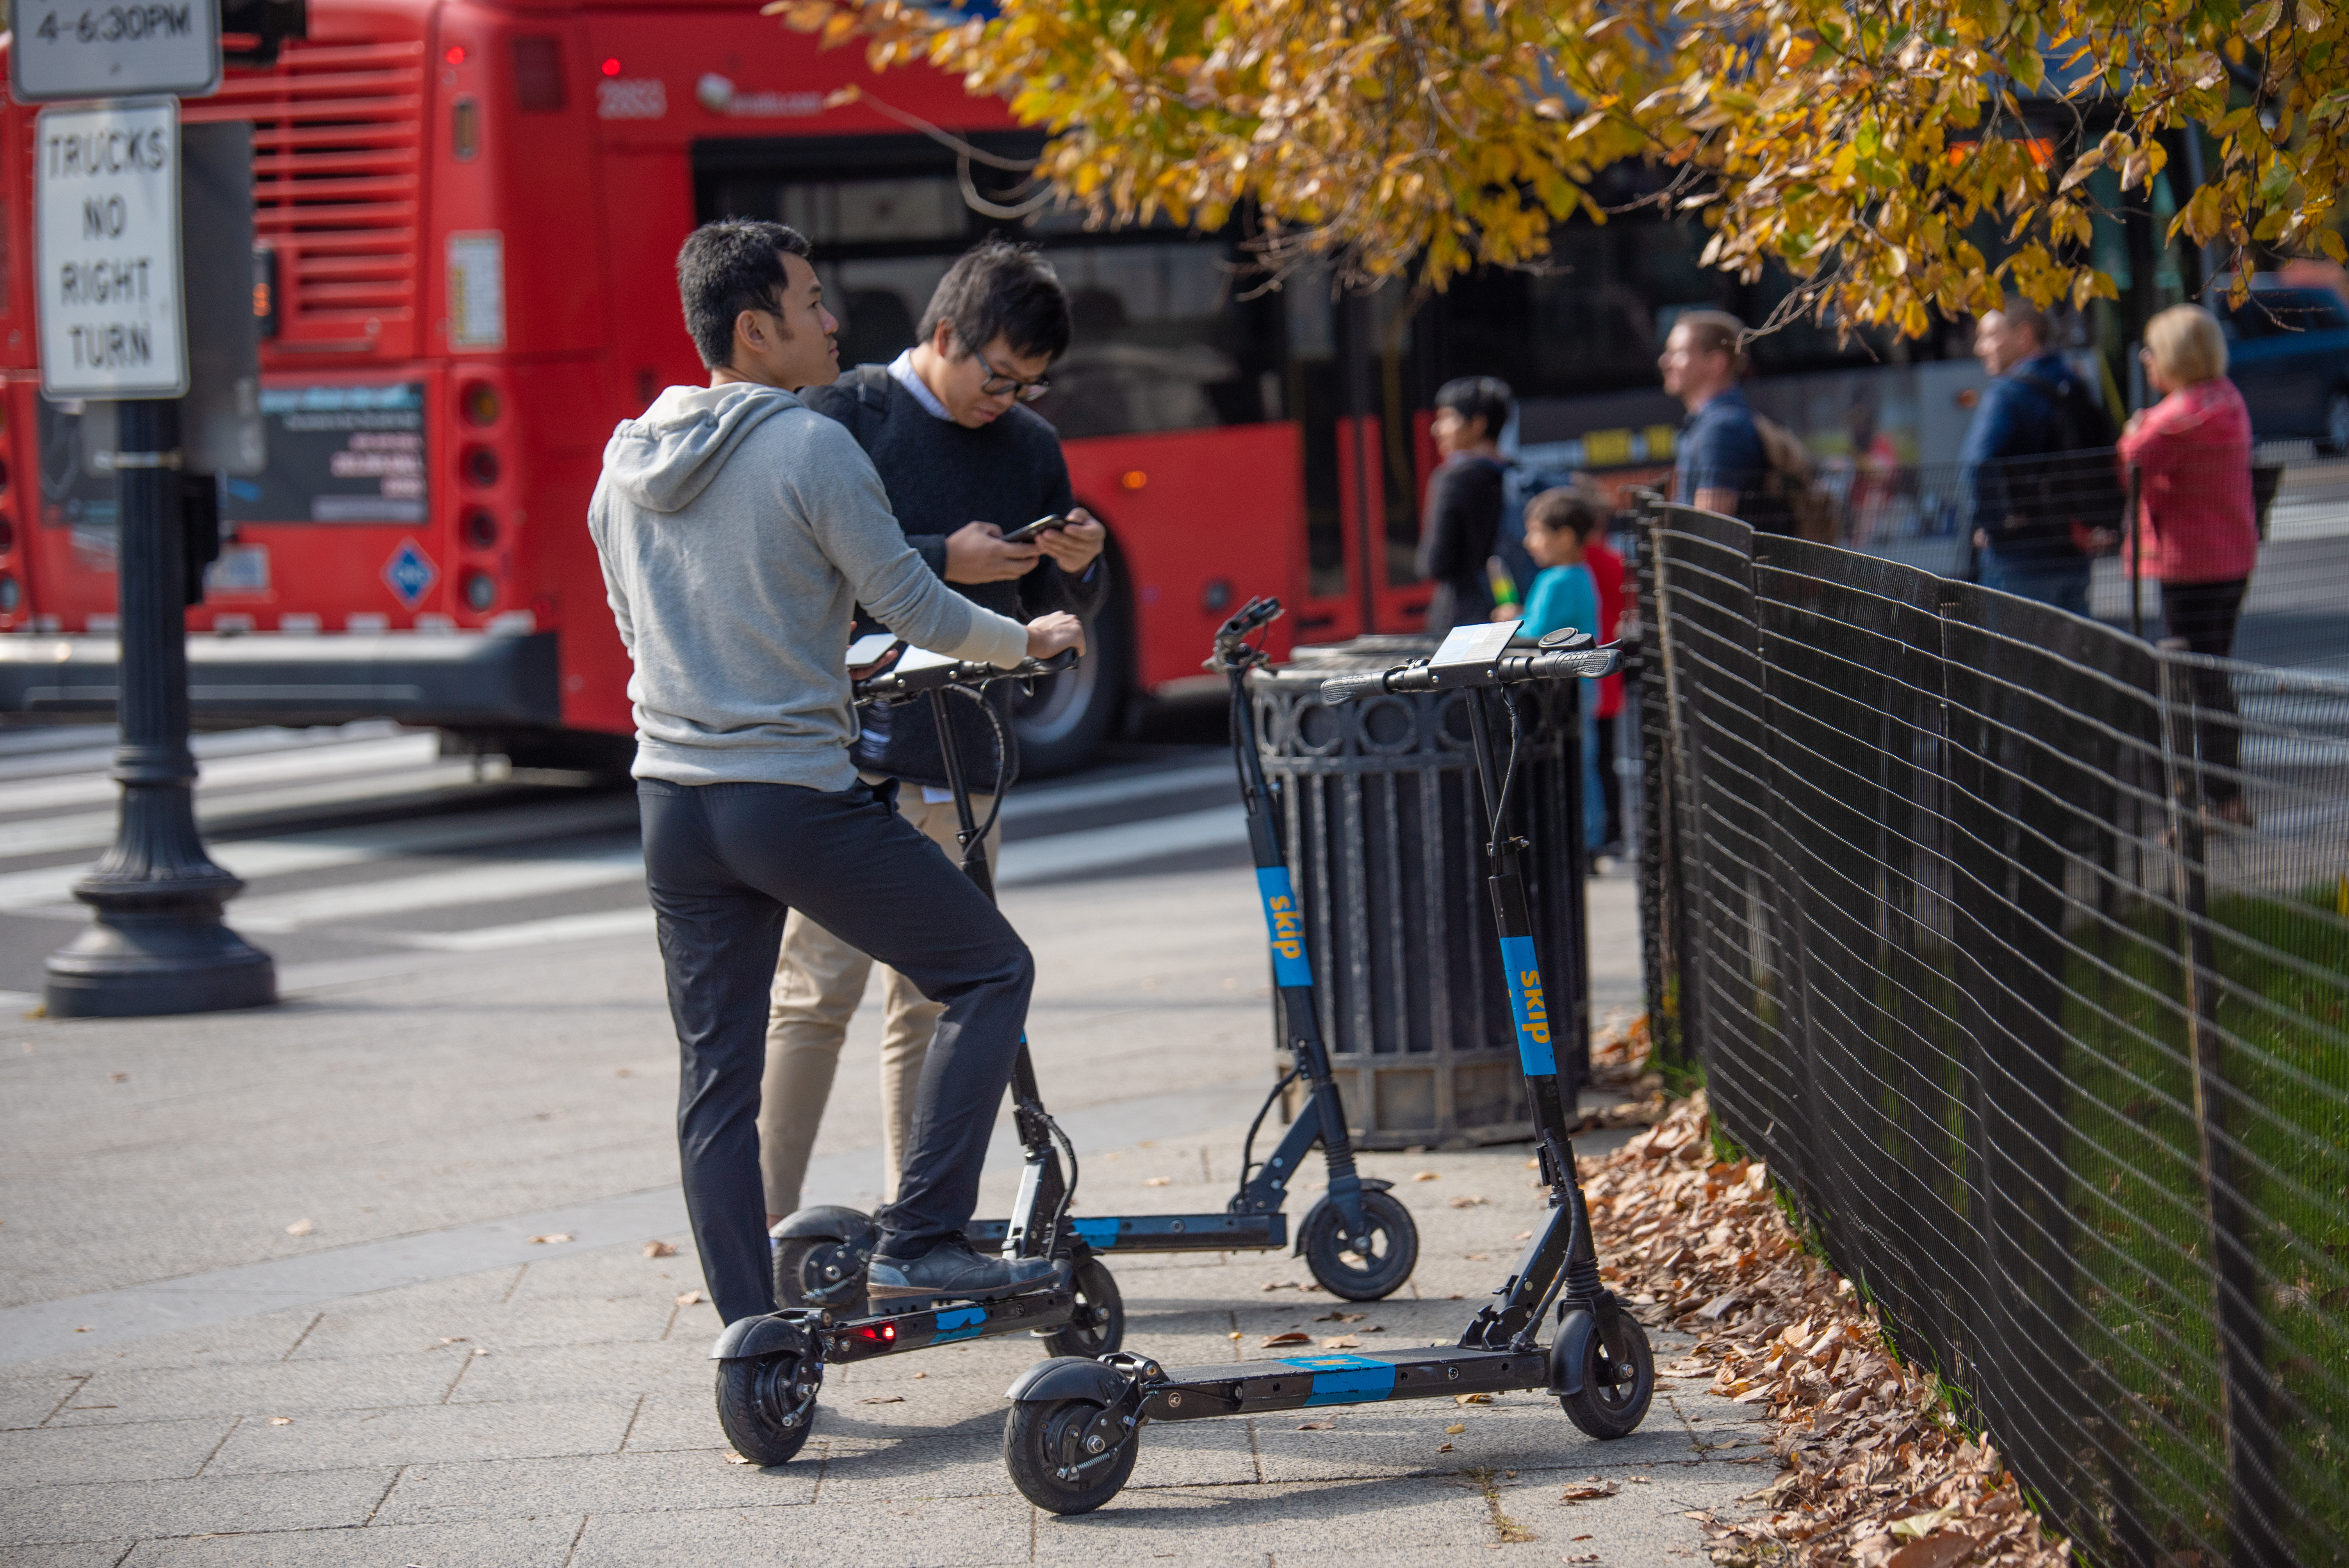 Skip scooters are headed back to D.C. after the company's permit was suspended in June